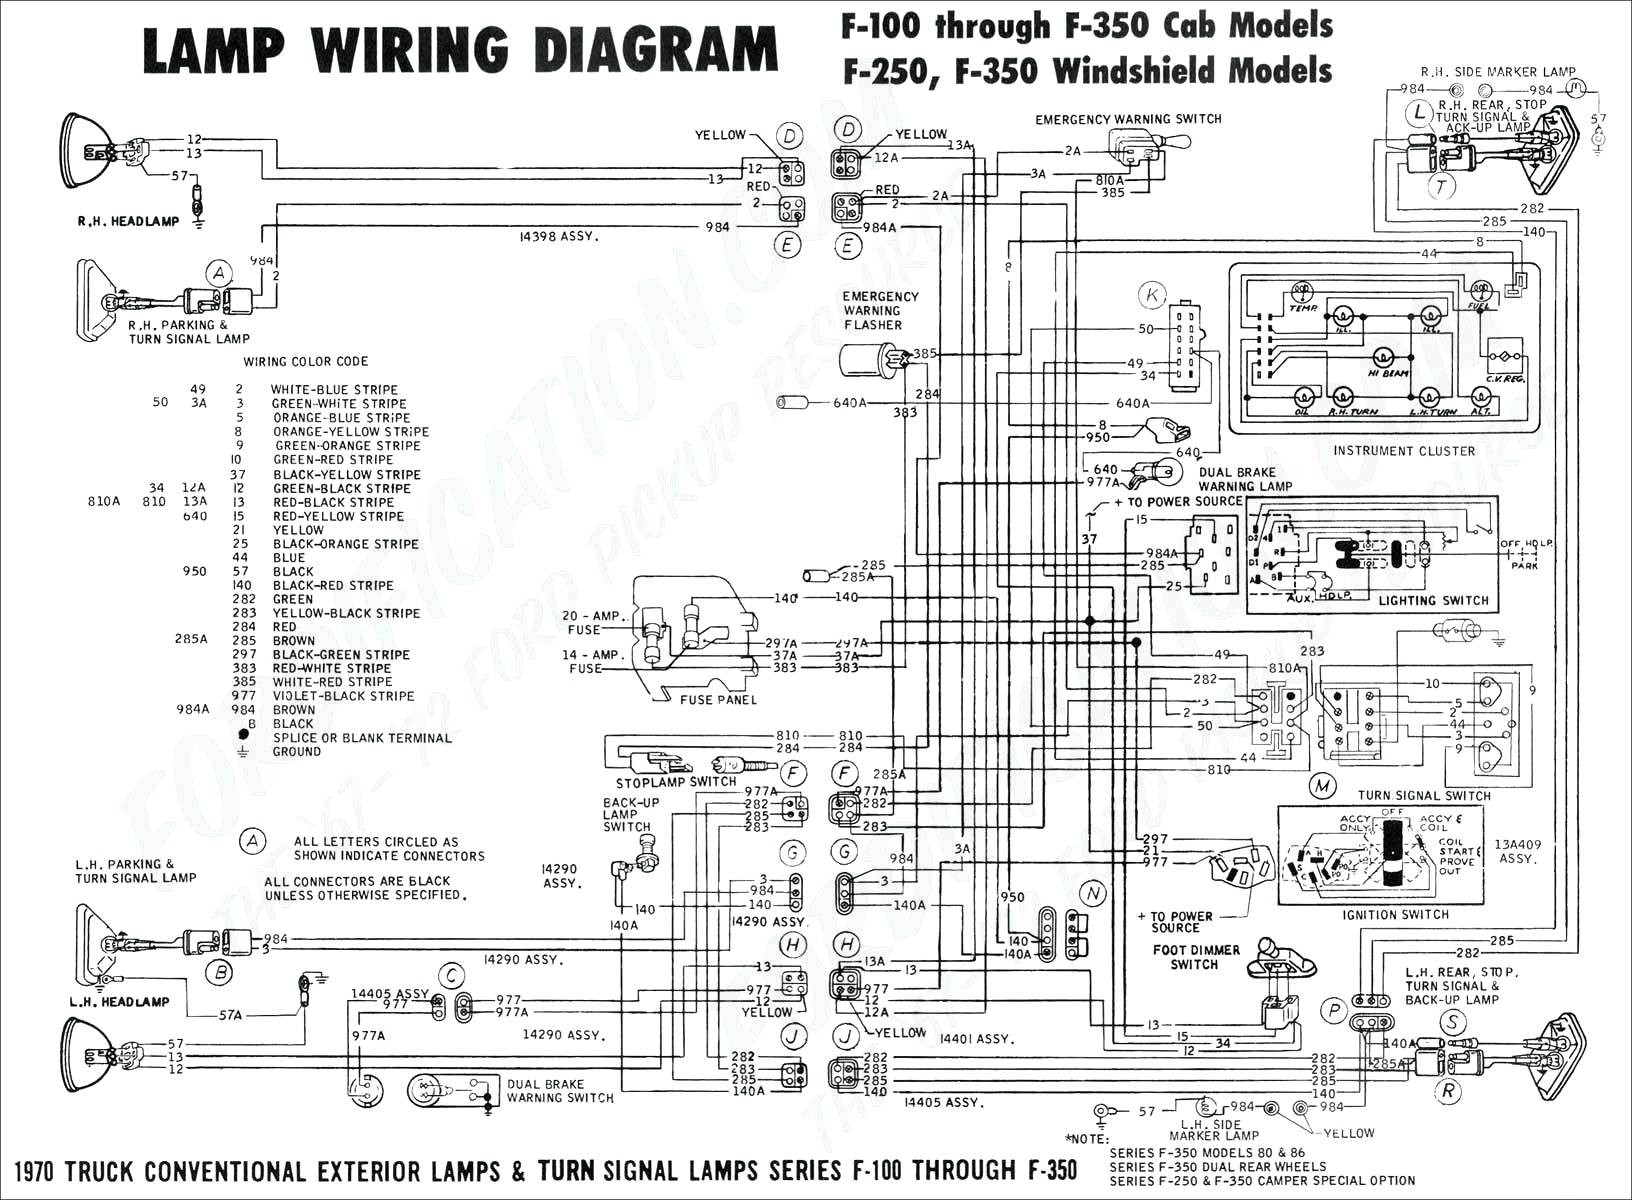 7 Wire Trailer Plug Diagram 450 Fuse Box Diagram Moreover 7 Wire Trailer Wiring Diagram as Of 7 Wire Trailer Plug Diagram 7 Wire thermostat Wiring Diagram Sample